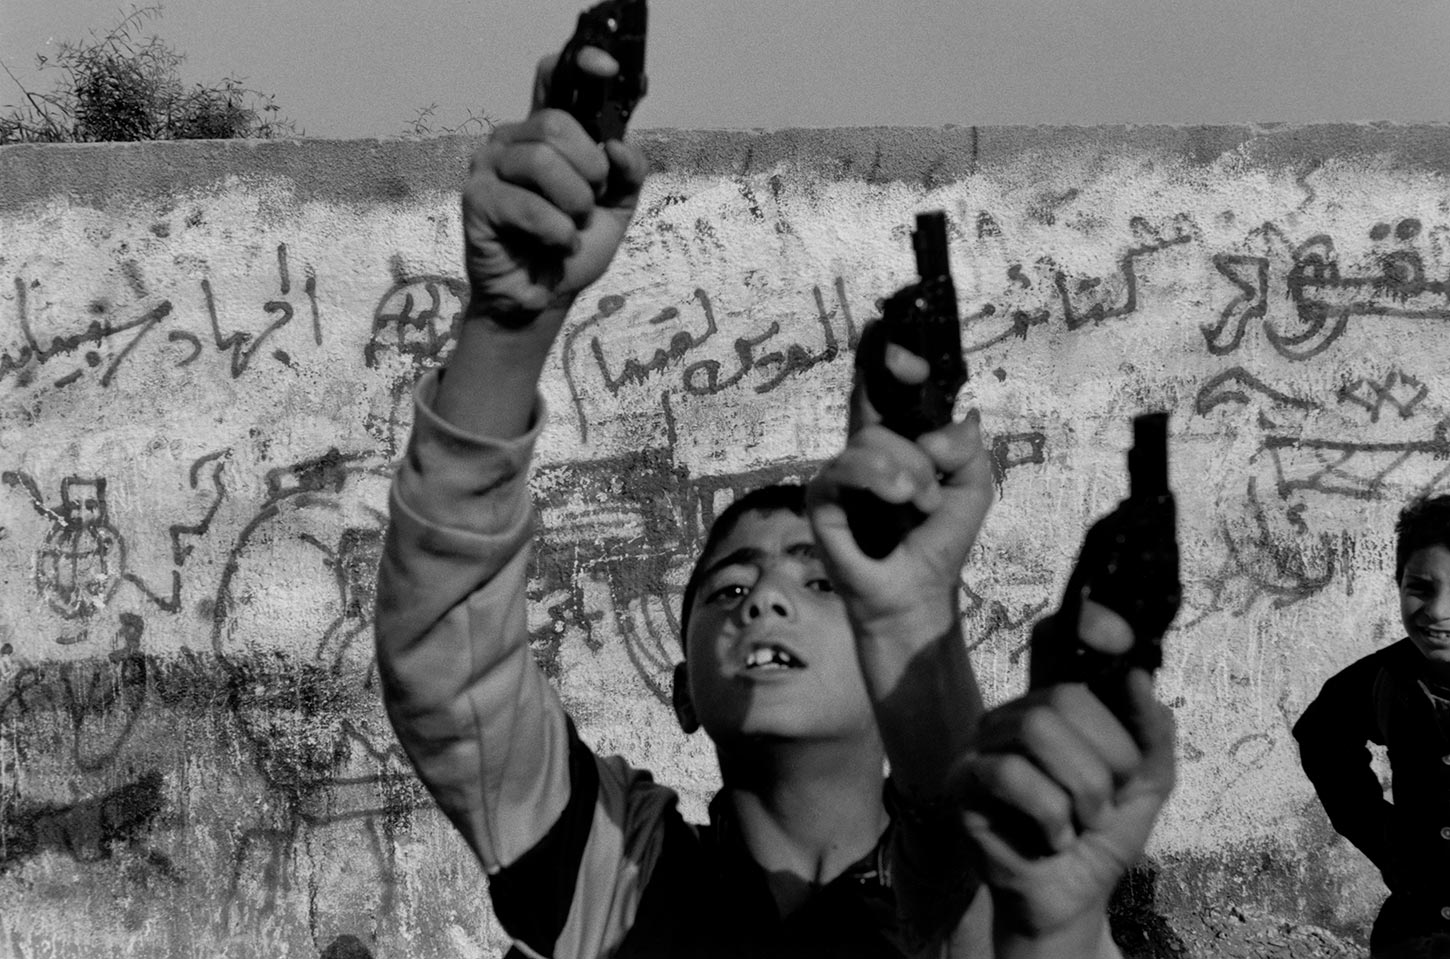 Children holding toy guns in the air. Gaza. 1993.